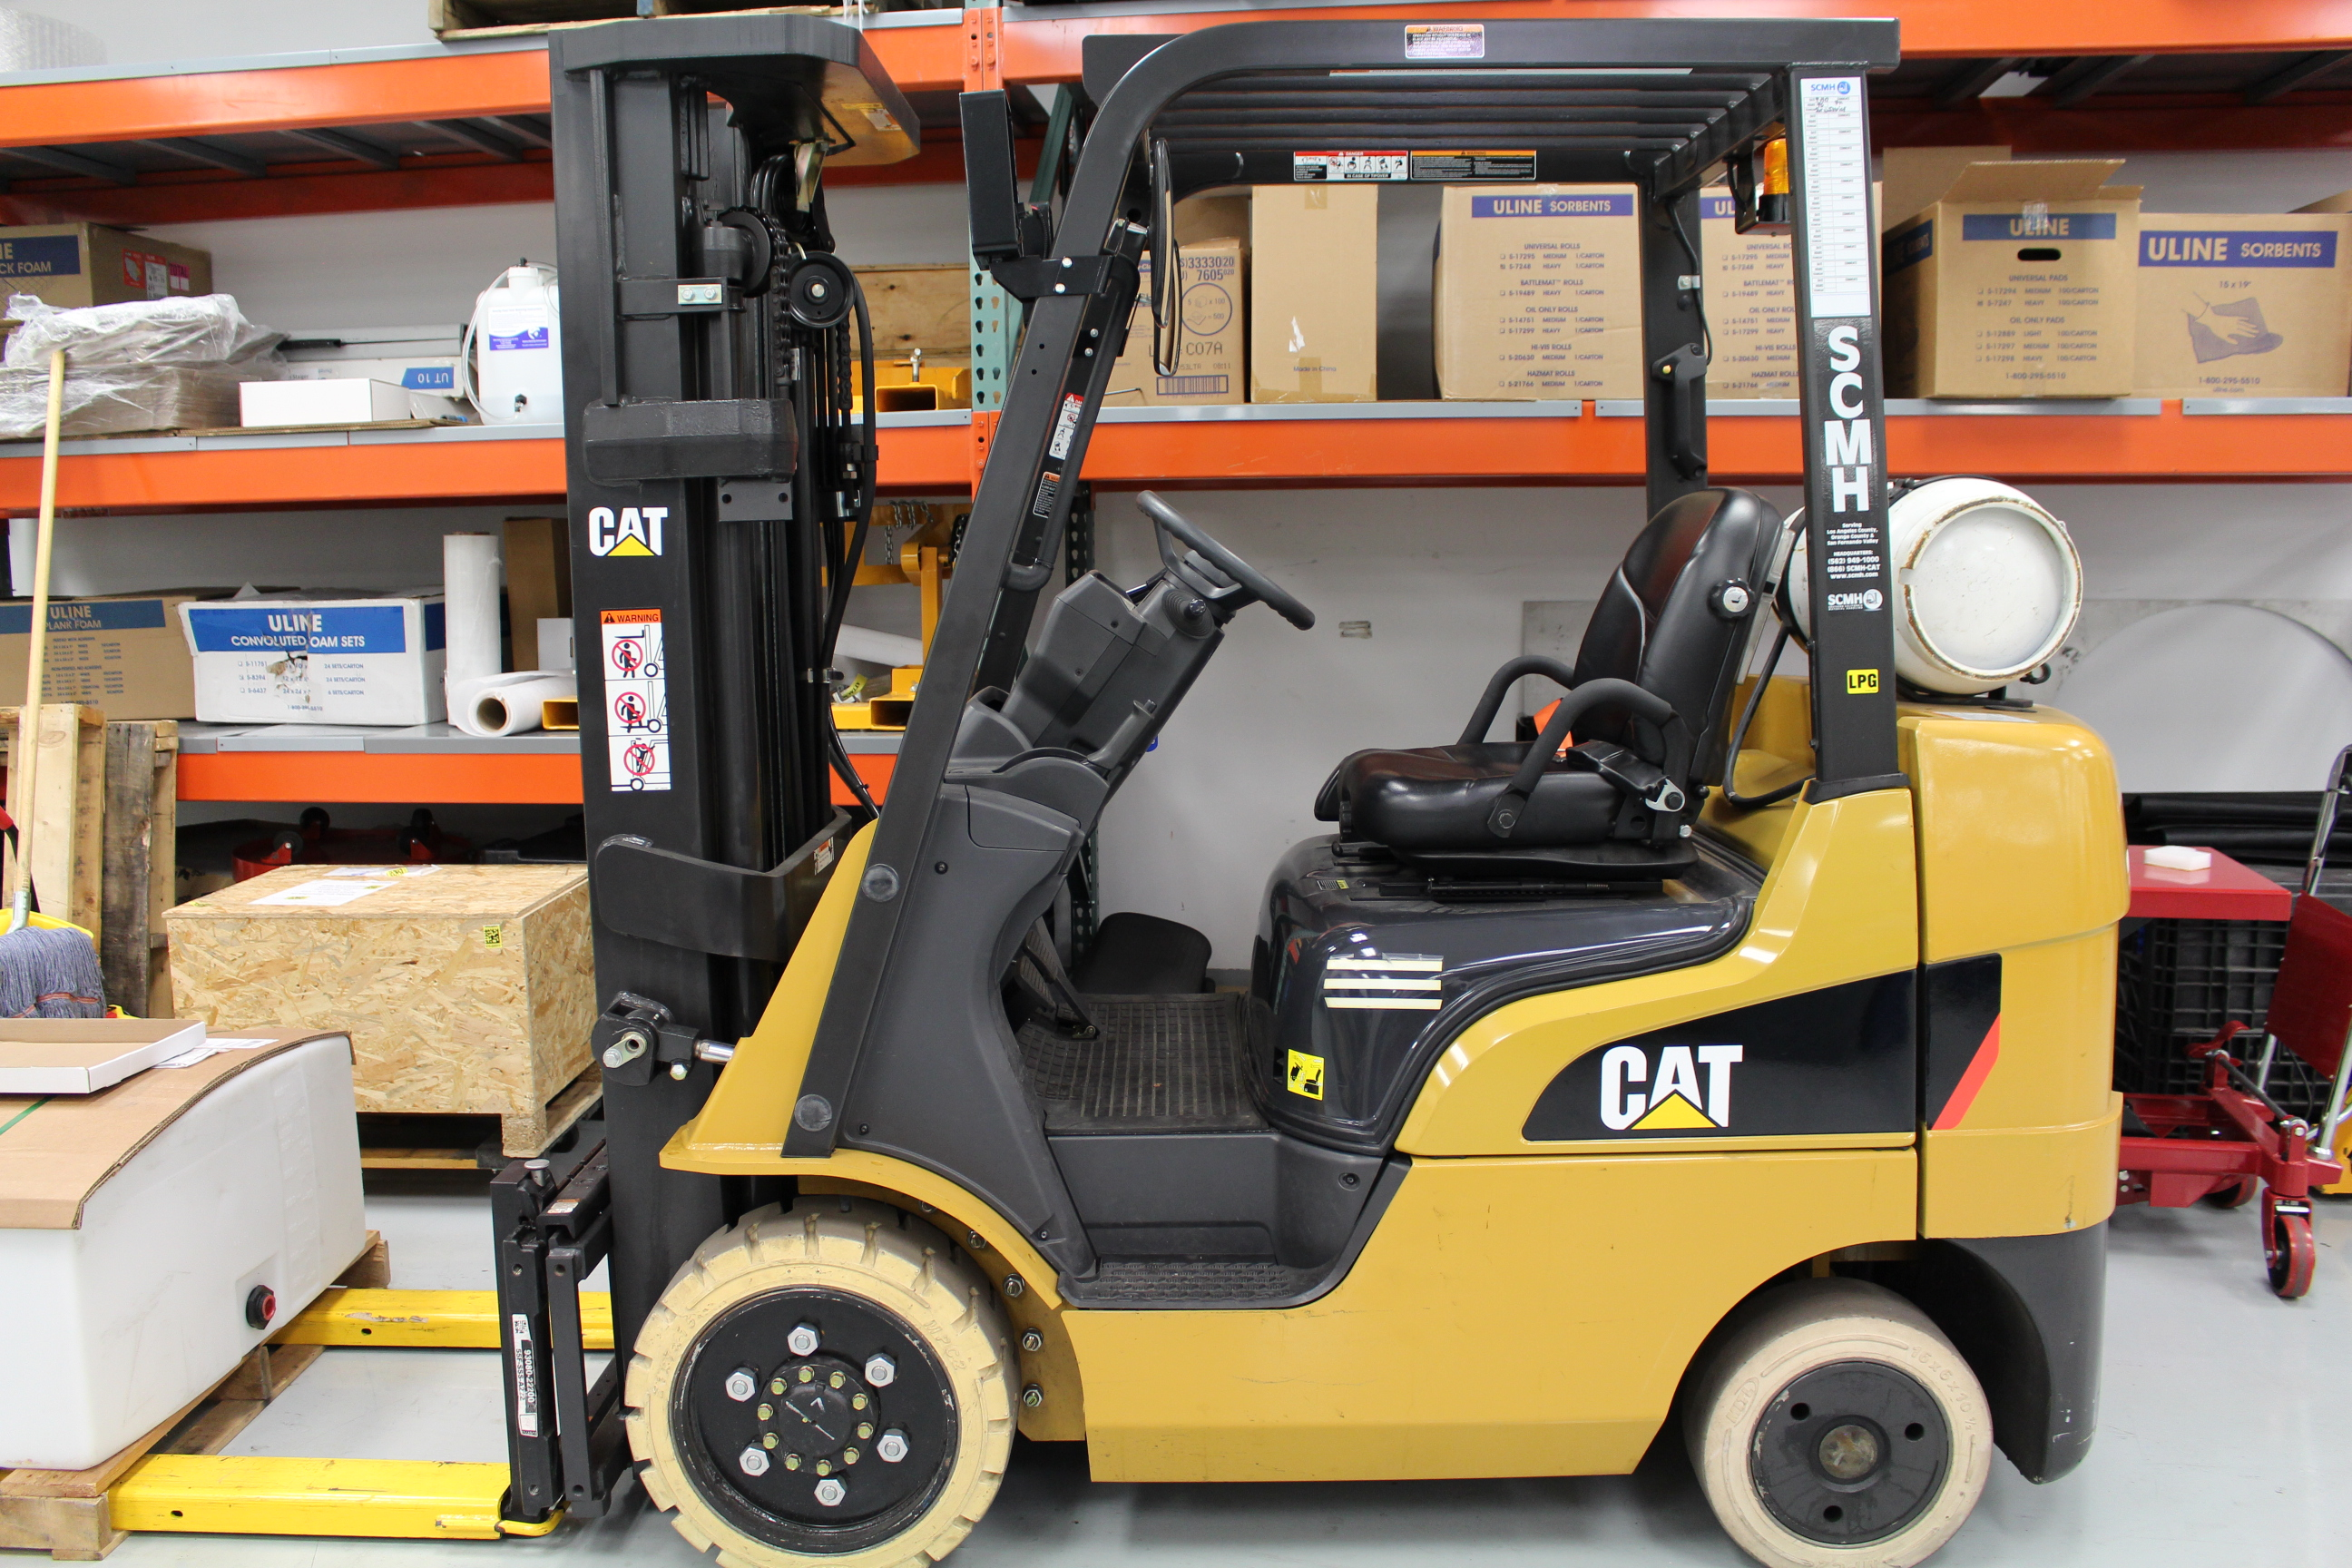 Lot 0A - MUST SEE WORLD ONSITE WEBCAST AUCTION EVENT!